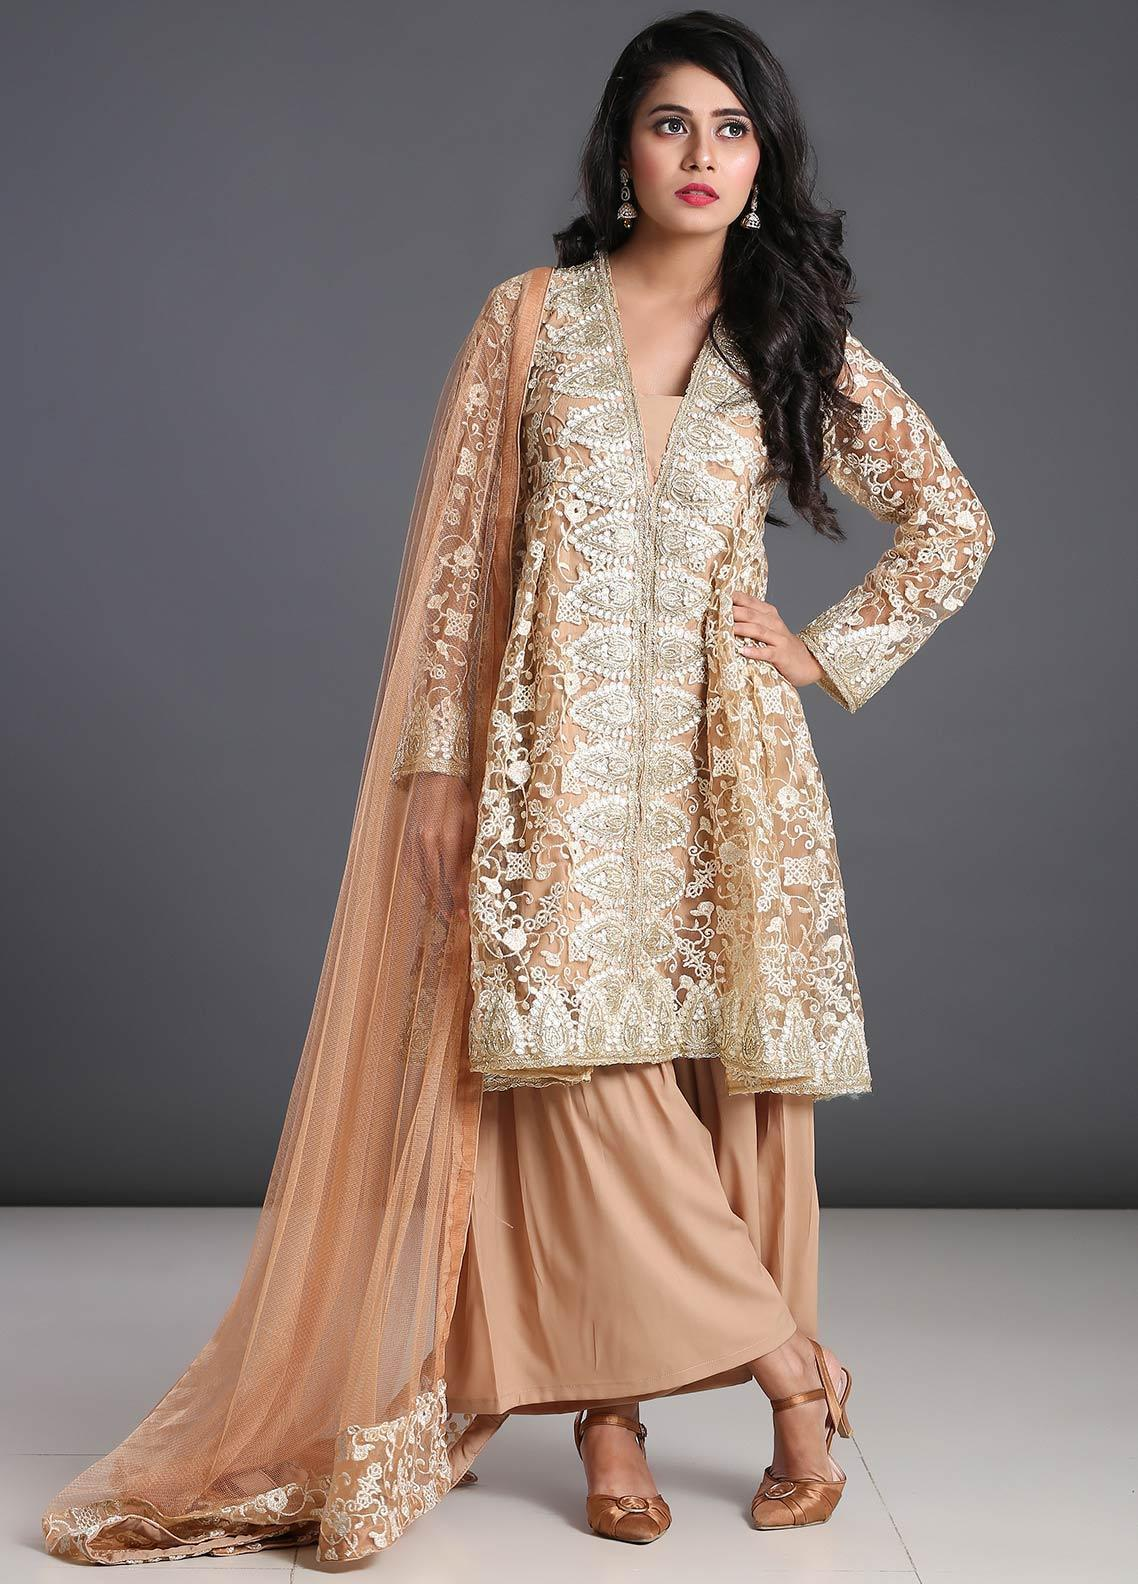 Zoonaj Embroidered Zari Net Stitched 3 Piece Suit ZF-200 Camel Brown